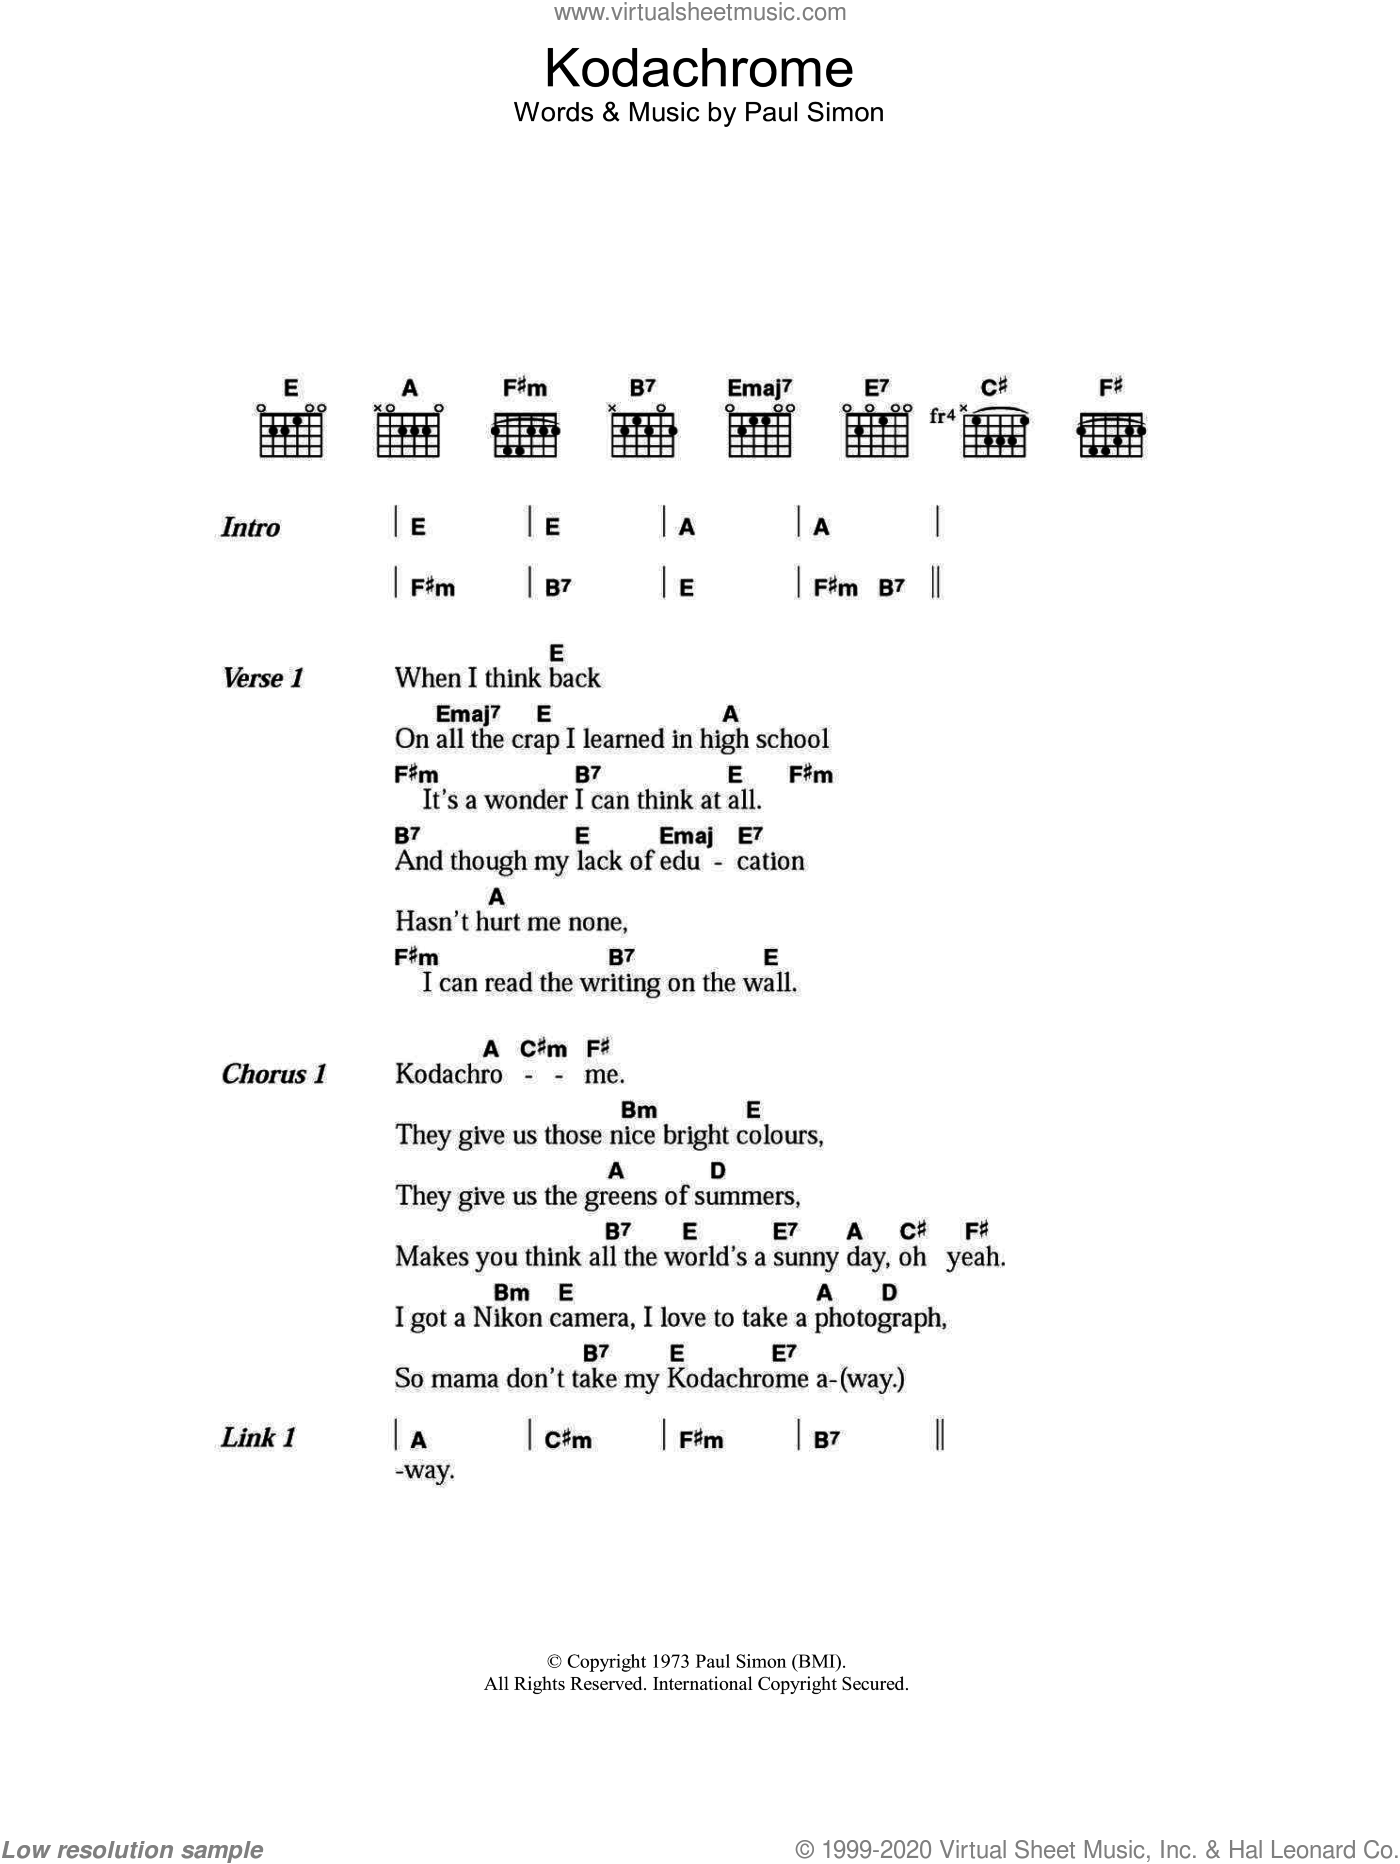 Simon - Kodachrome sheet music for guitar (chords) [PDF]